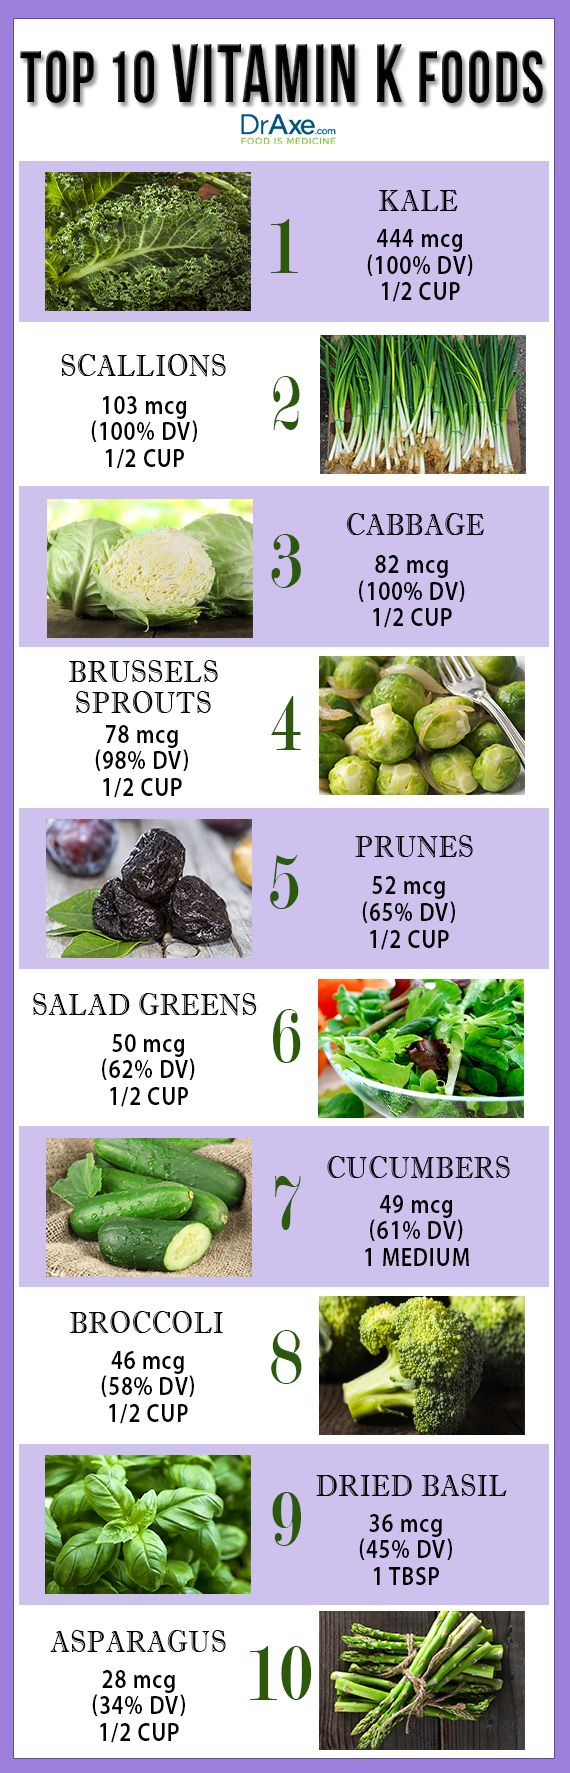 Top 10 Vitamin K Foods & Benefits of Foods High in Vitamin KKim Gibbs